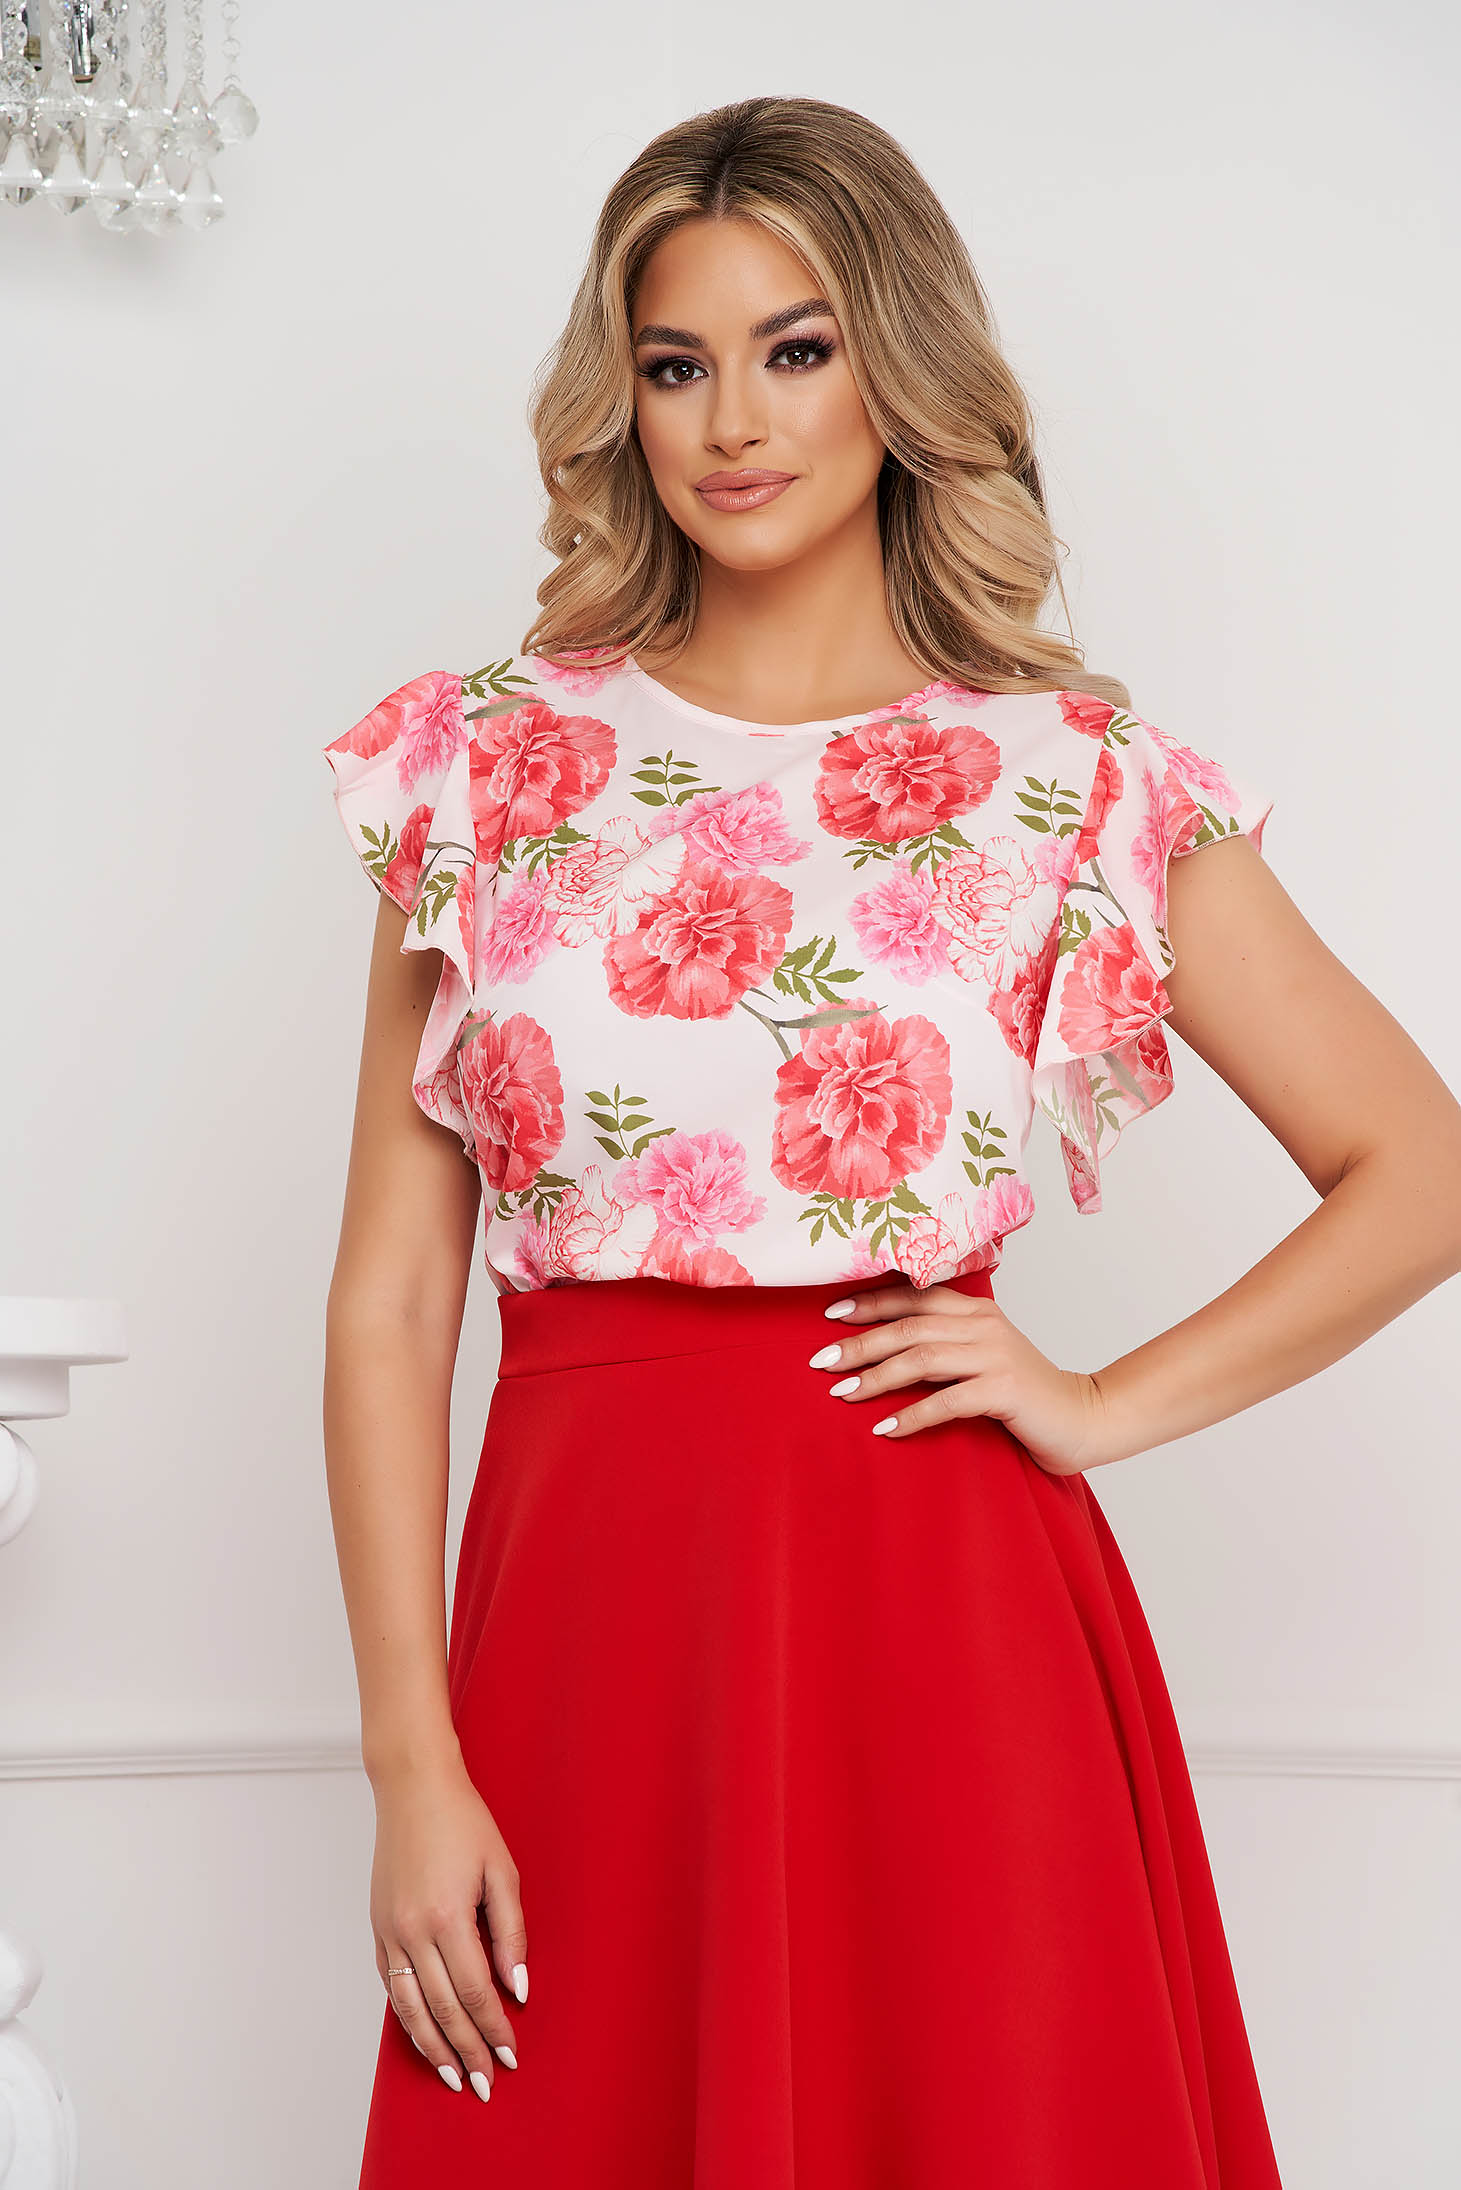 StarShinerS women`s blouse office loose fit with ruffle details with floral print